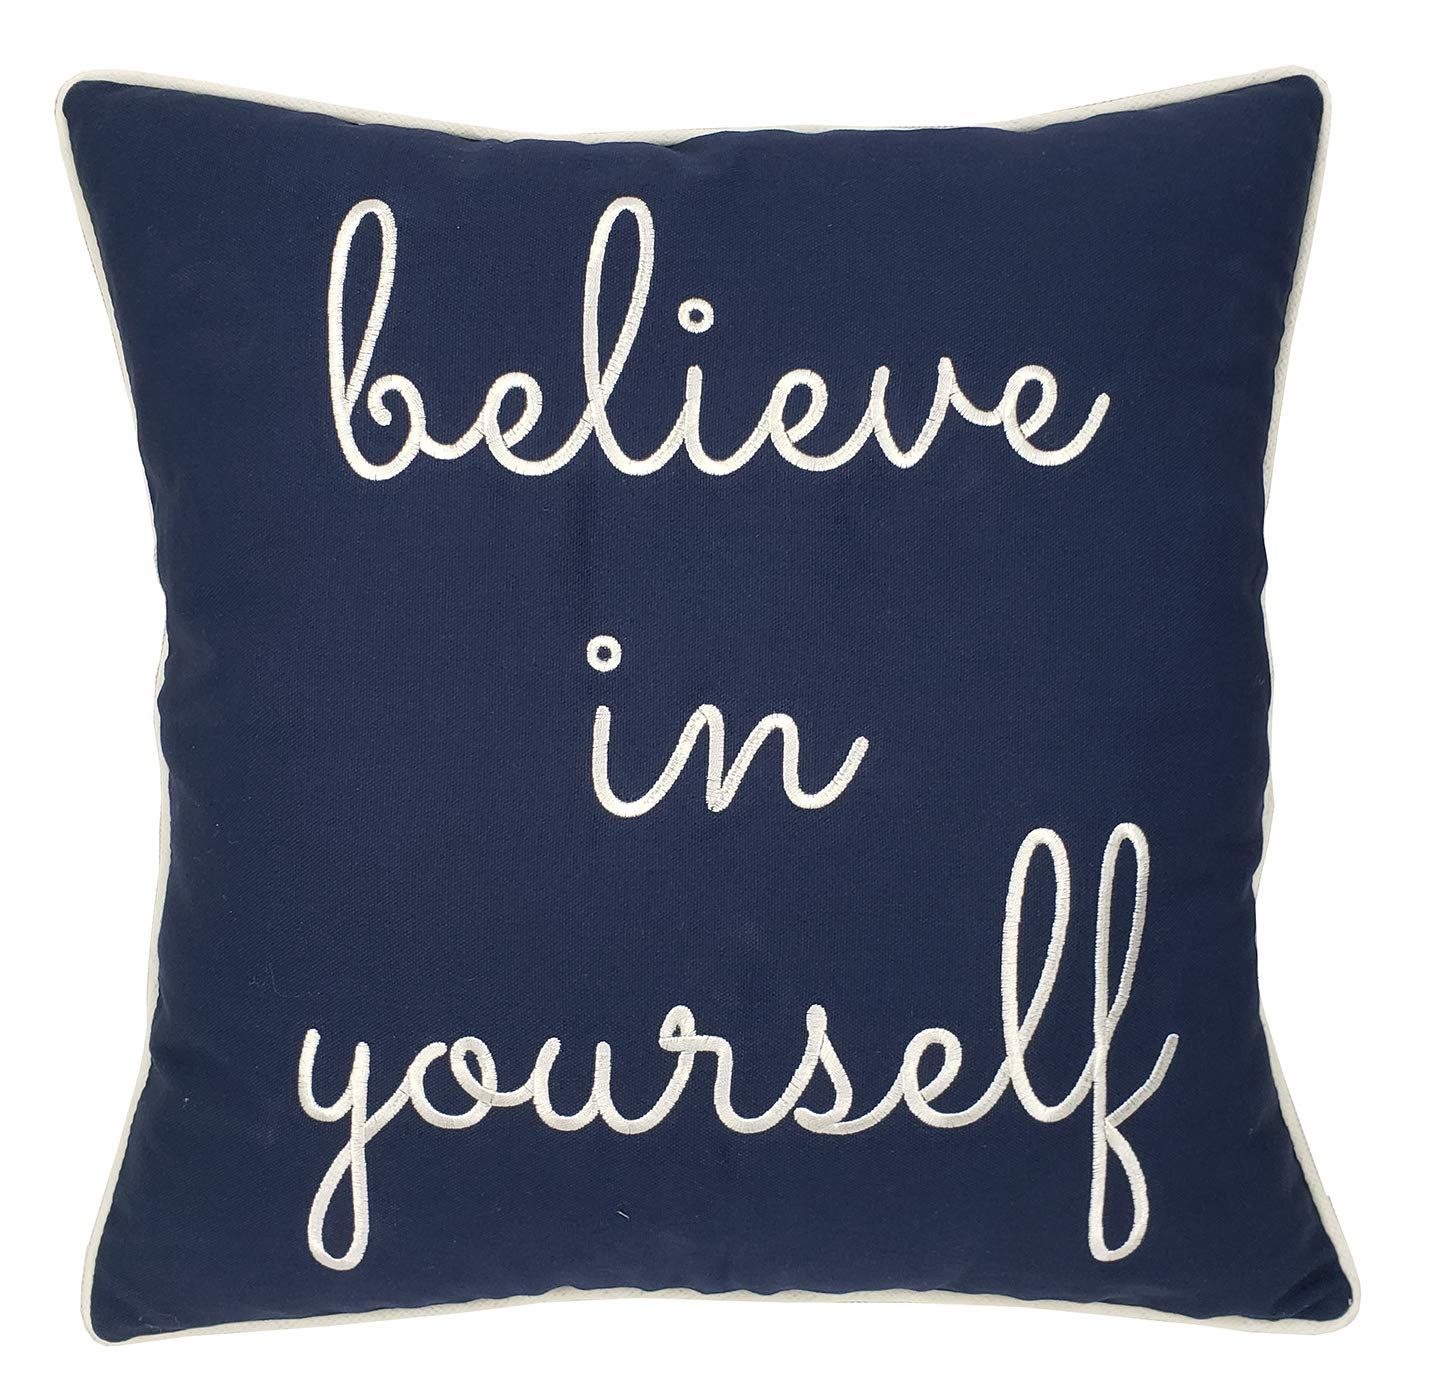 Trivenee Tex Pillowcase Embroidered Funny Inspirational Quote Throw Pillow Cover Decorative Pillowcase for Couch Sofa Gift for Graduation Teen Boys Girls Christmas (Believe(Navy), 18'X18)